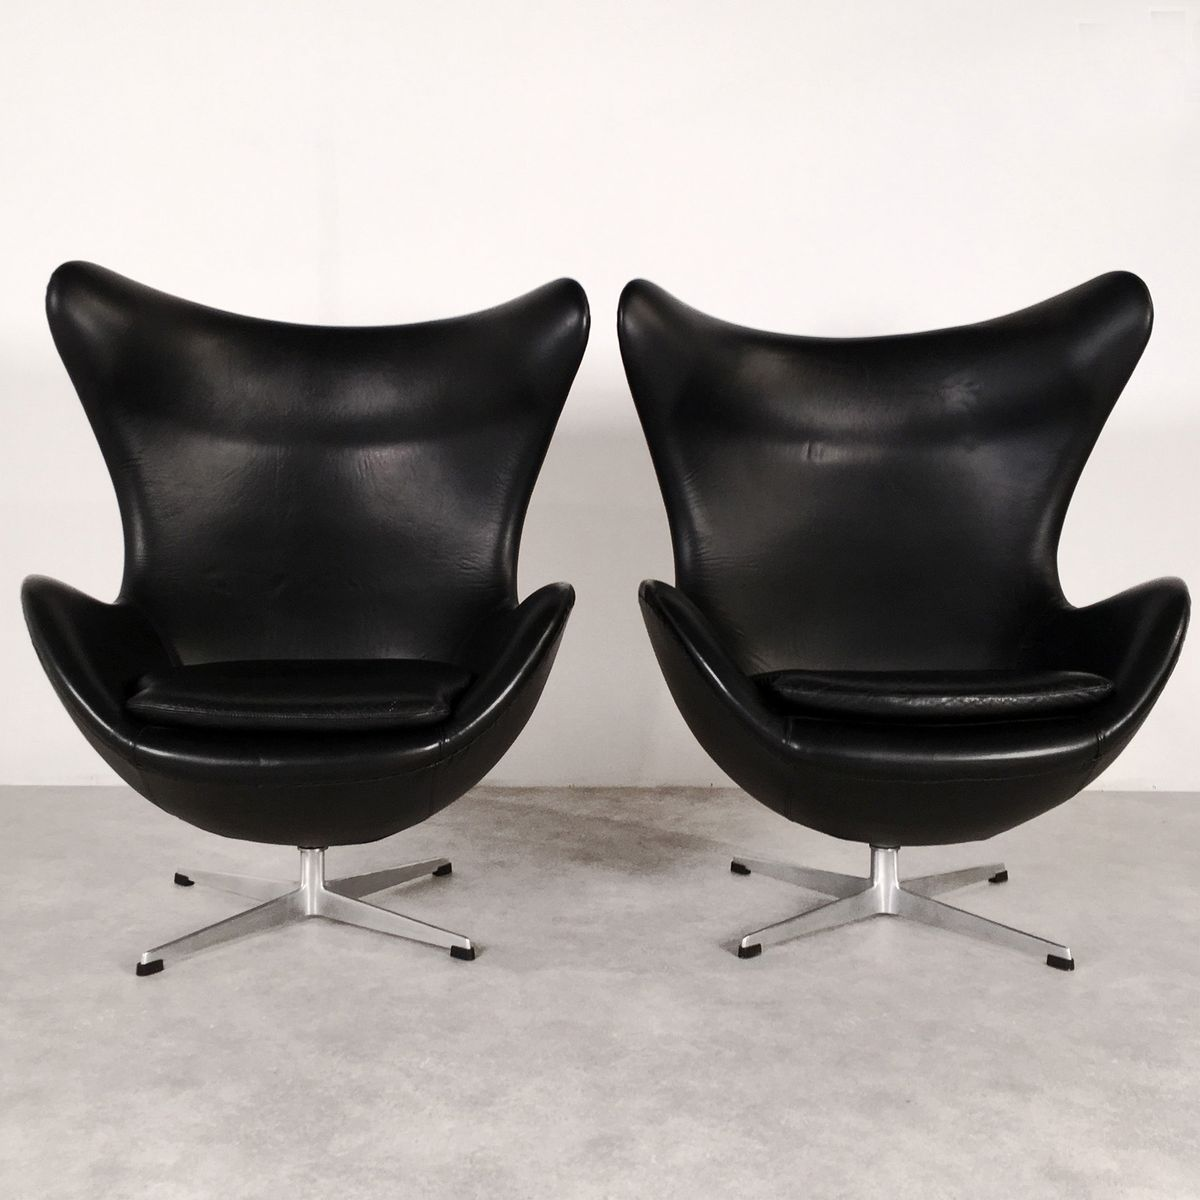 d nischer egg chair von arne jacobsen f r fritz hansen 1963 bei pamono kaufen. Black Bedroom Furniture Sets. Home Design Ideas